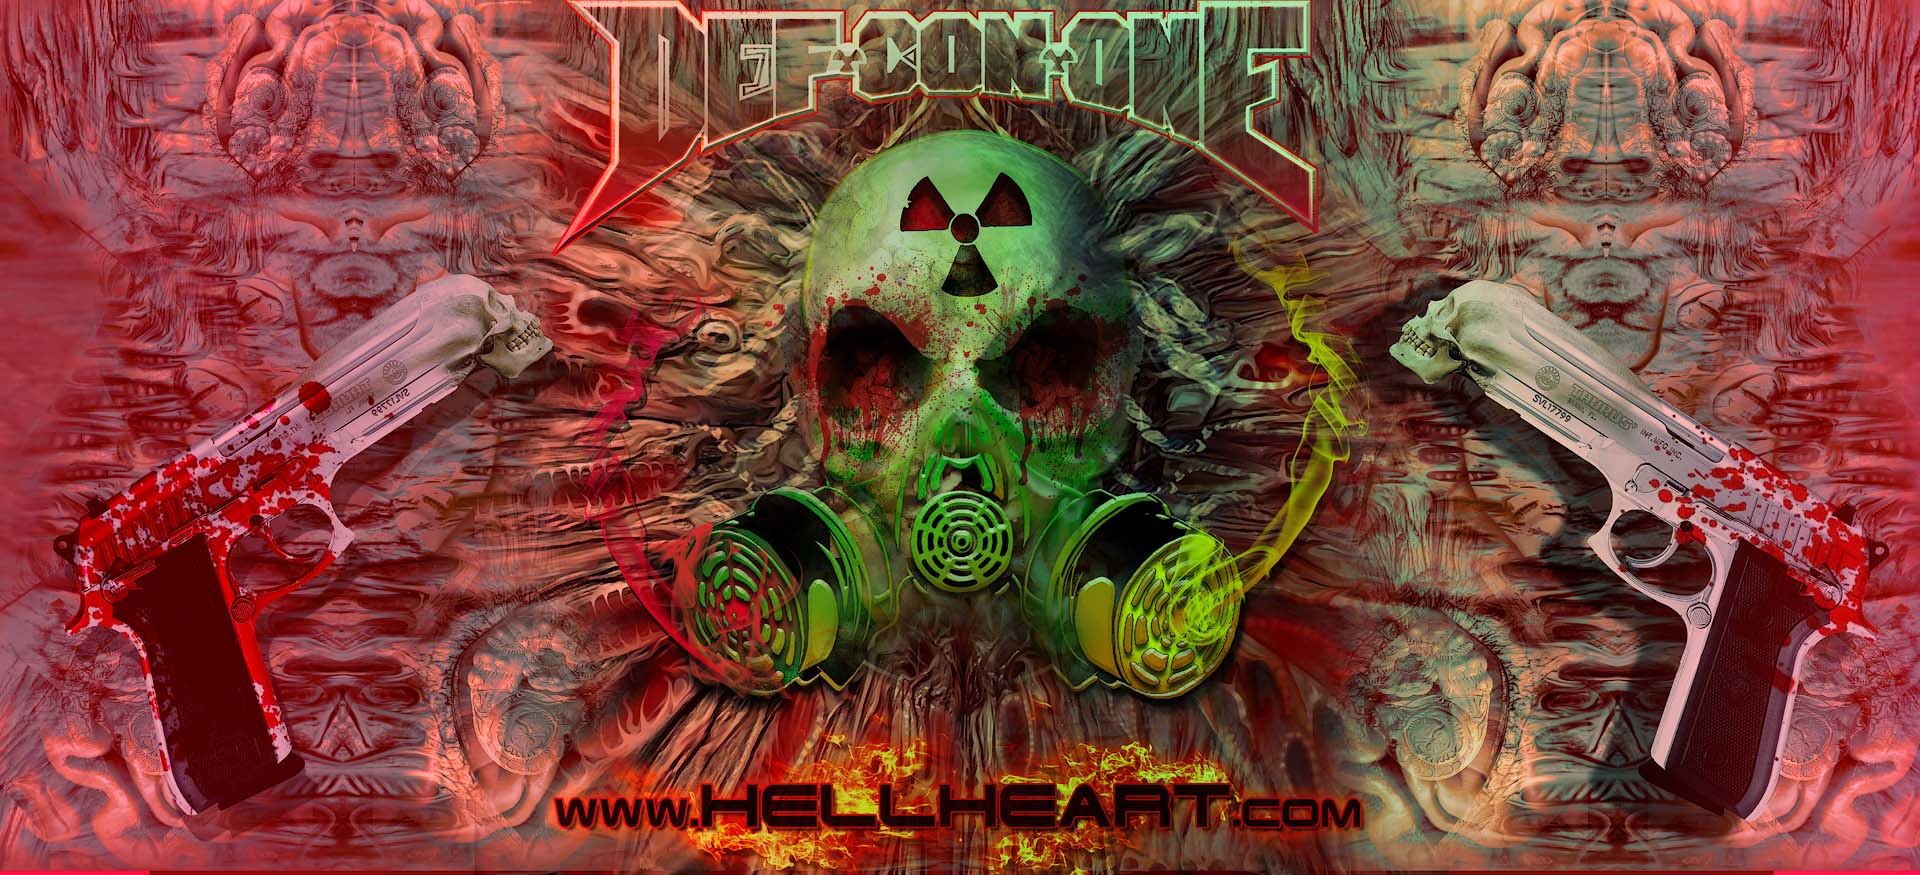 DEF-CON-ONE ARTWORK BY HELLHEART.